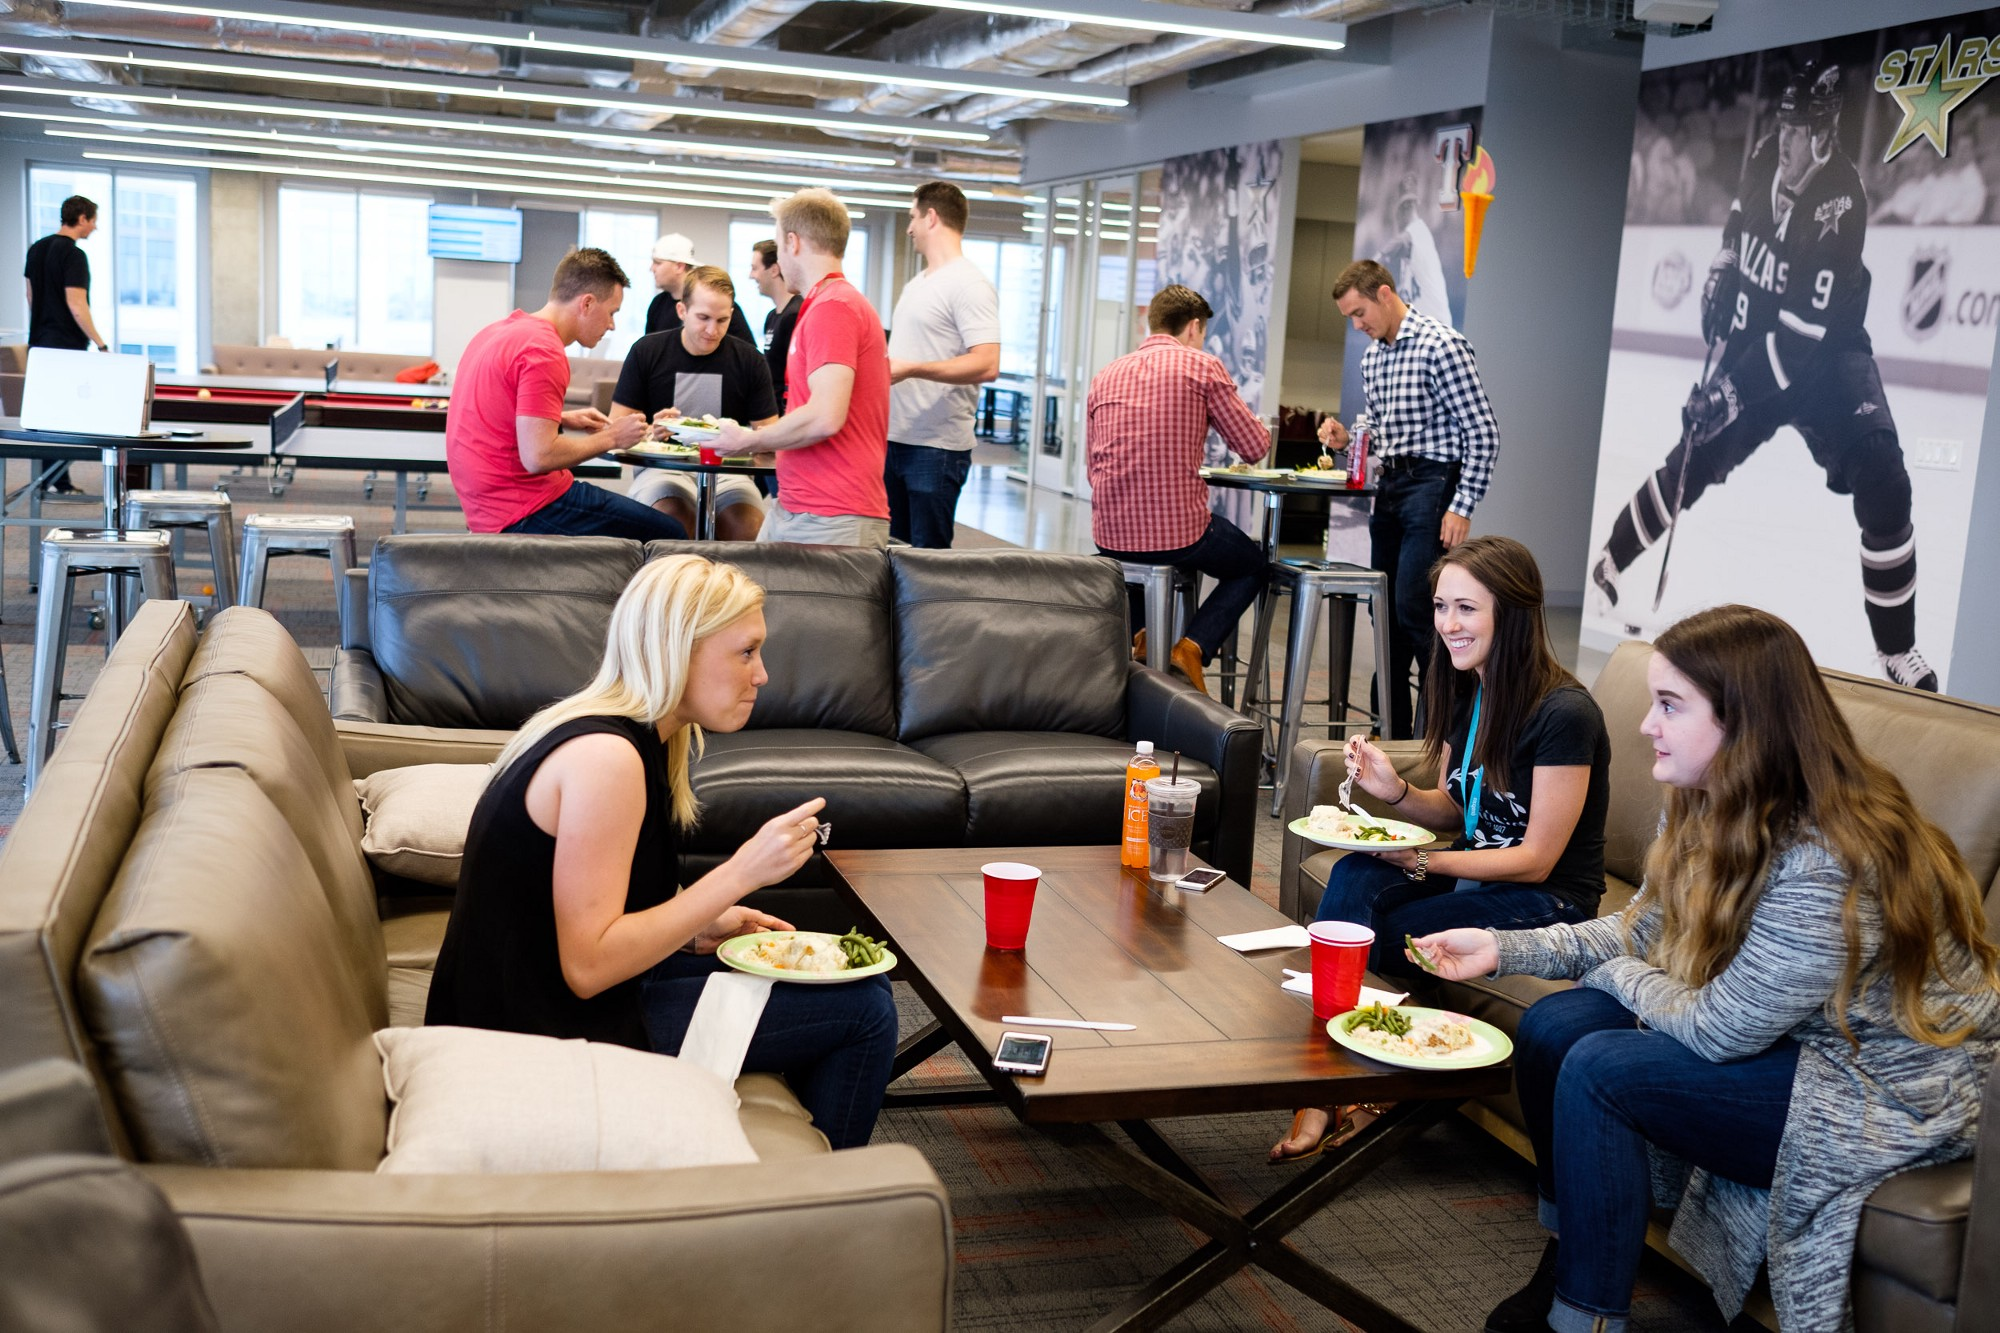 Lunch Is Catered Free Of Charge 3 Days Per Week Typically The Team Gathers In Lounge Area